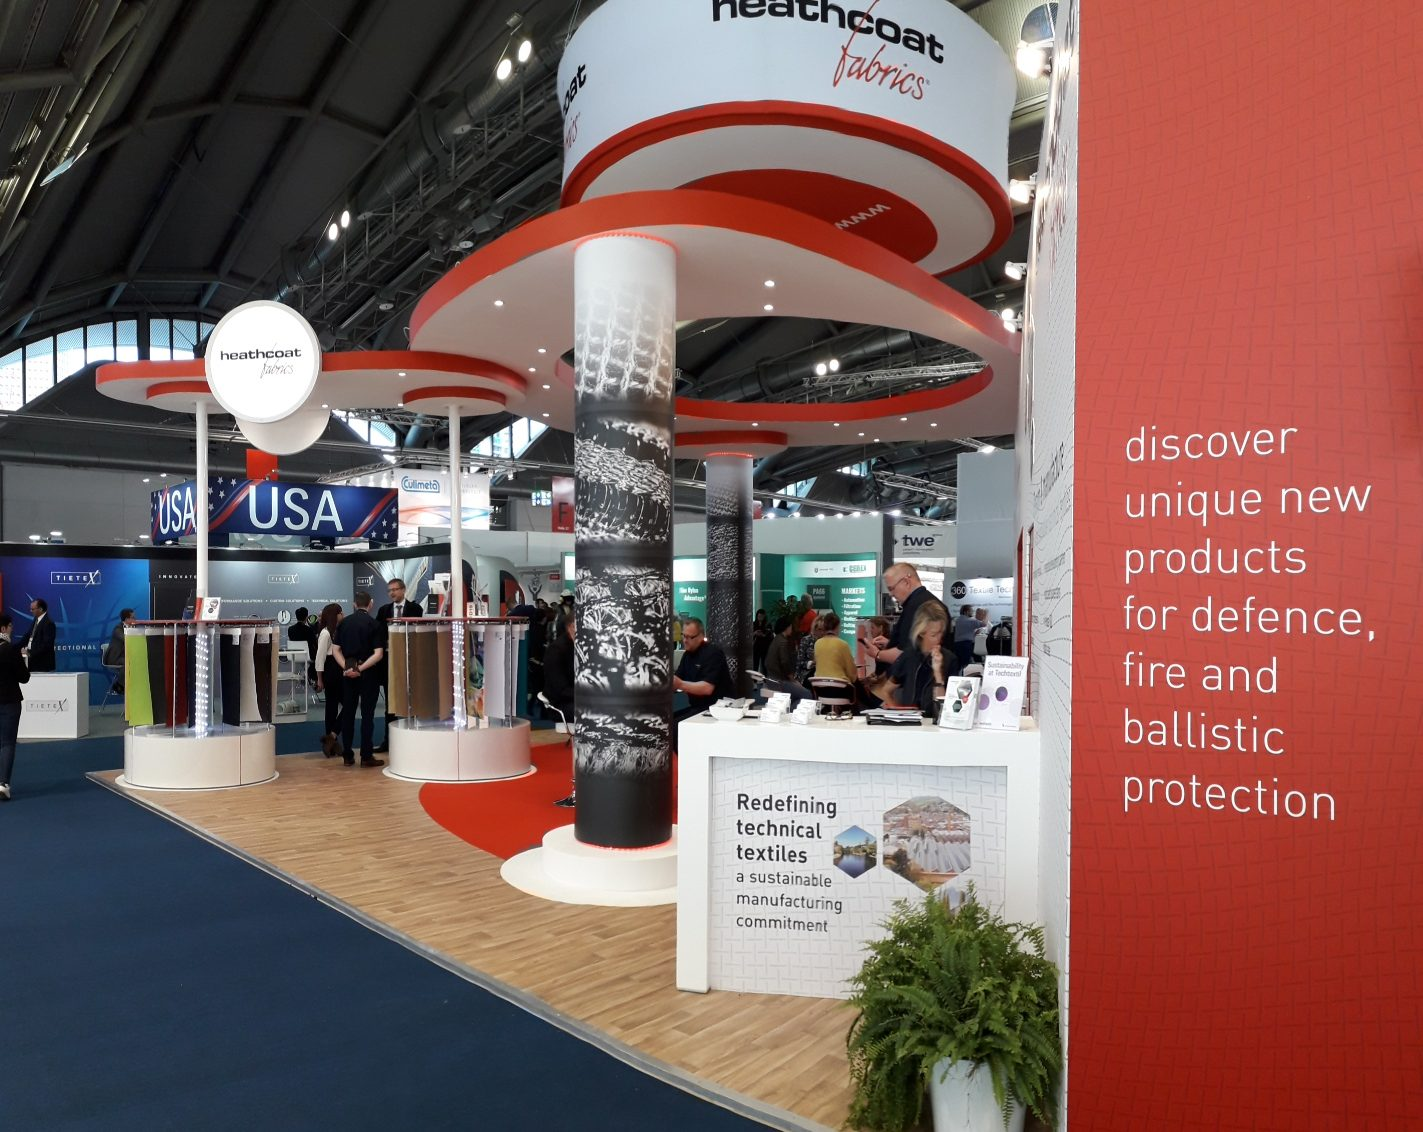 Heathcoat Fabrics at Techtextil 2019